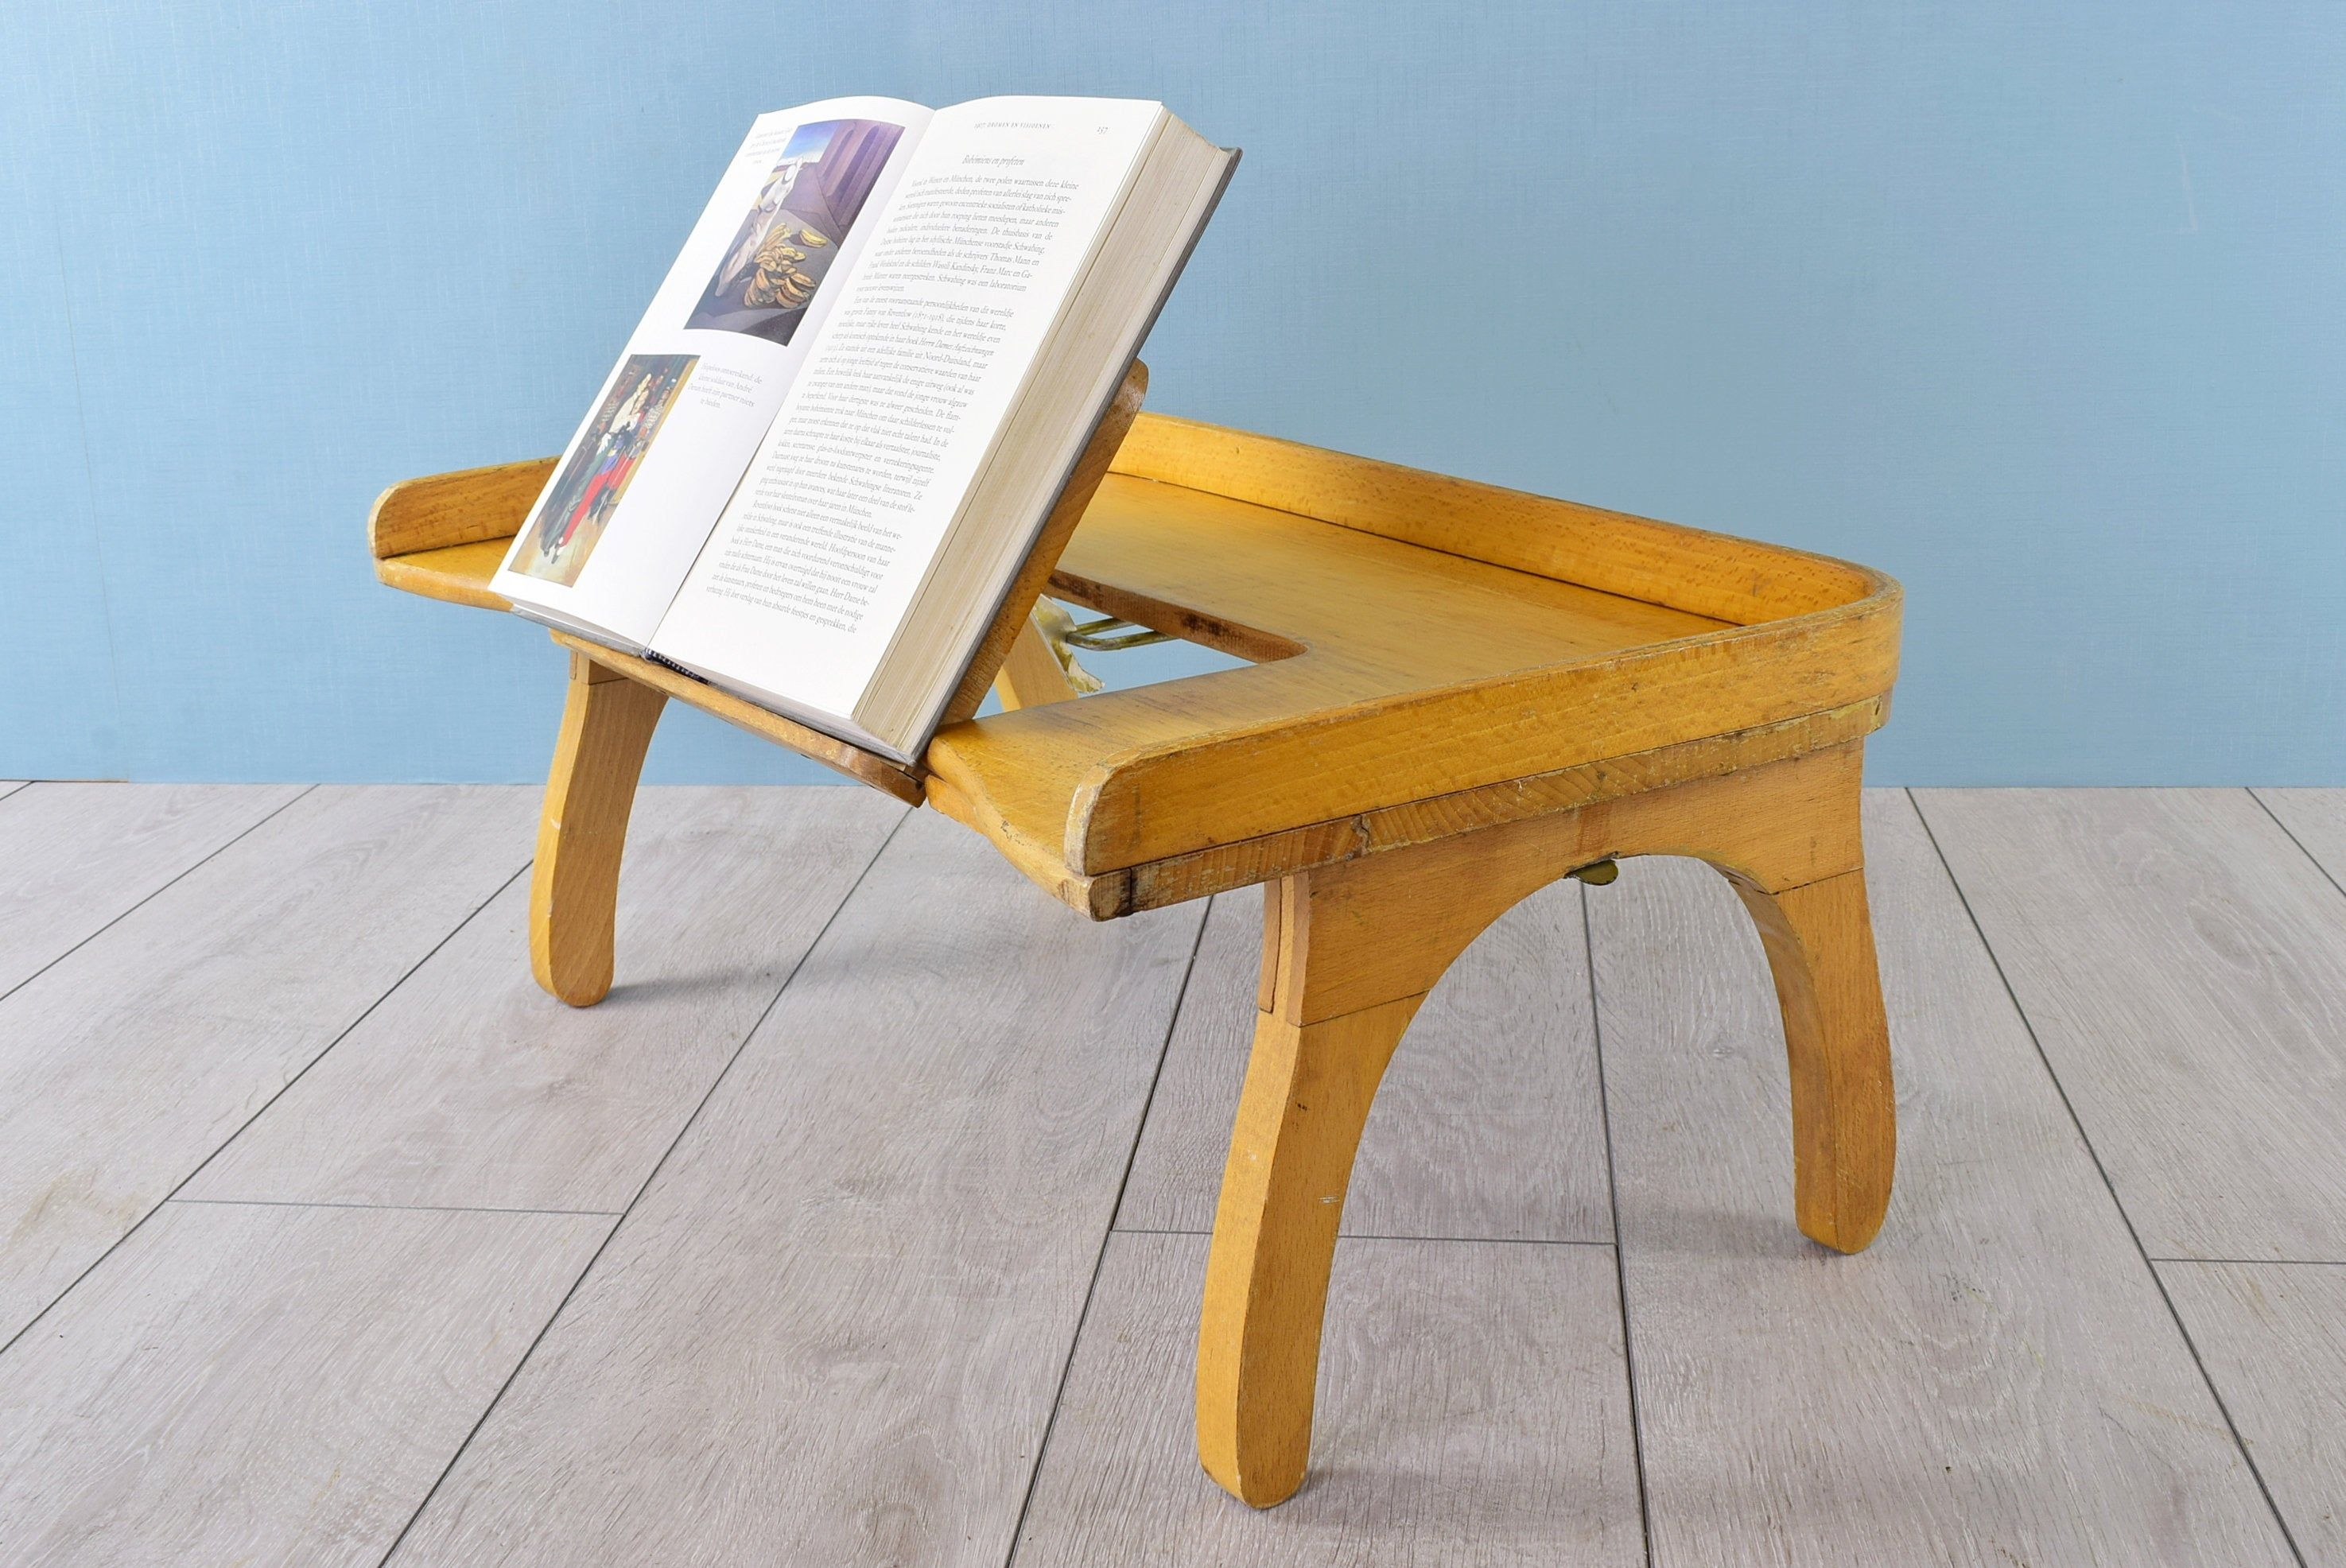 Vintage Bed Tray With Books Stand Torck Retro Design Breakfast Tray With Legs Fifties Folding Reading Table In Beech Wood 1950s Decor